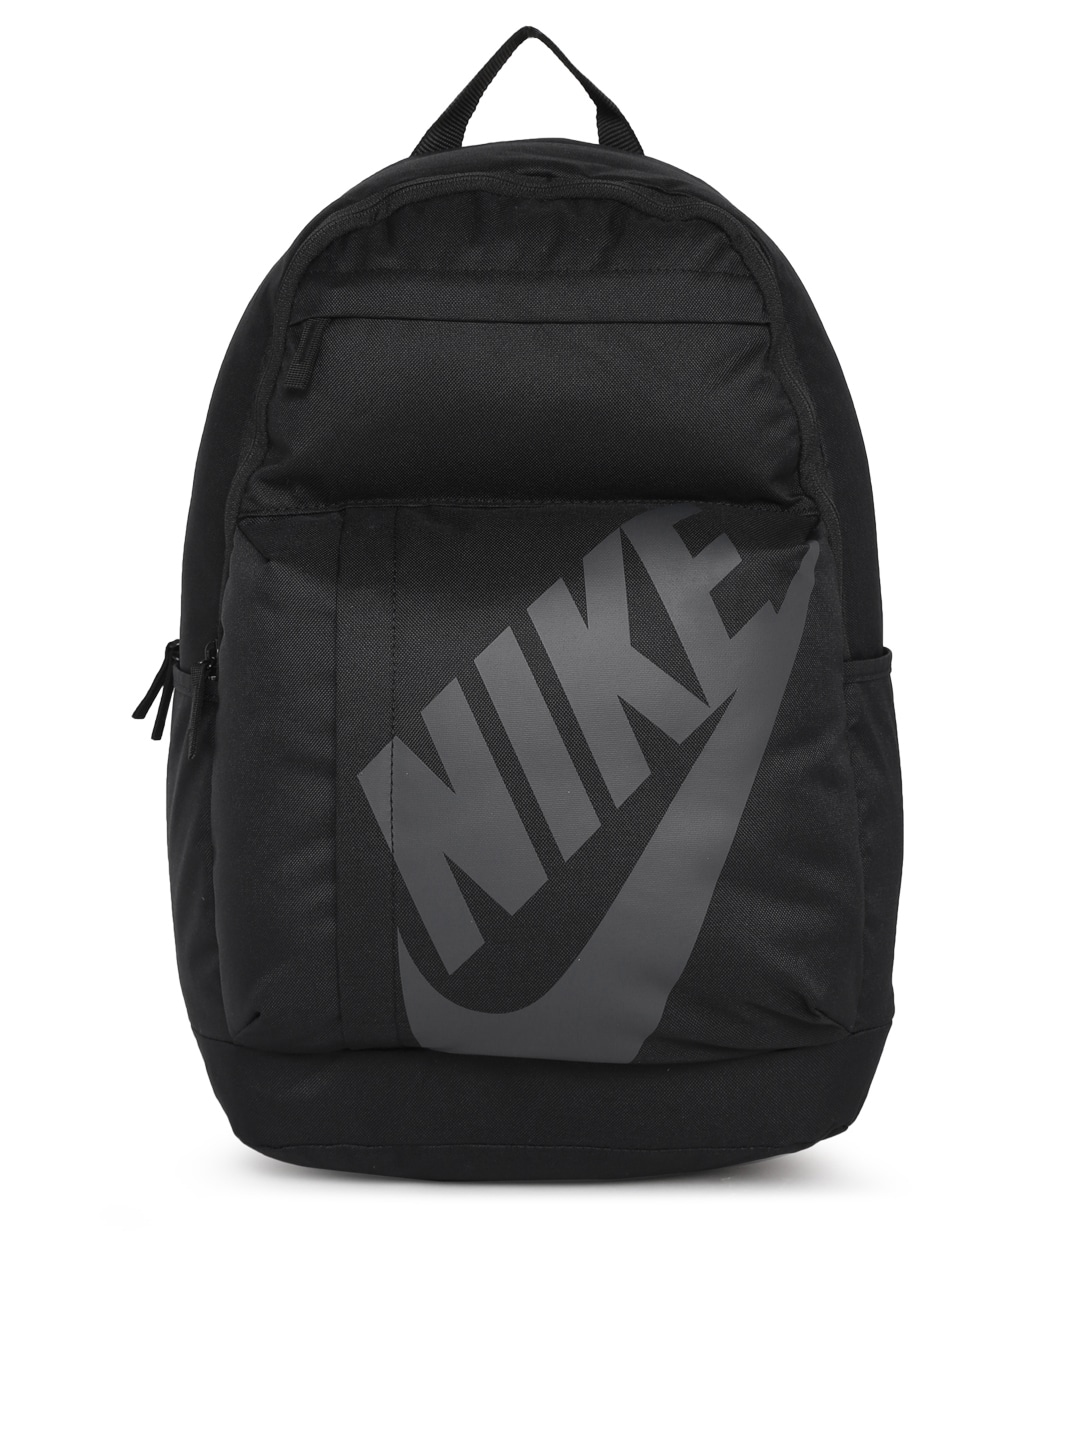 e66b267b5 Nike Black Unisex Backpacks Bags - Buy Nike Black Unisex Backpacks Bags  online in India